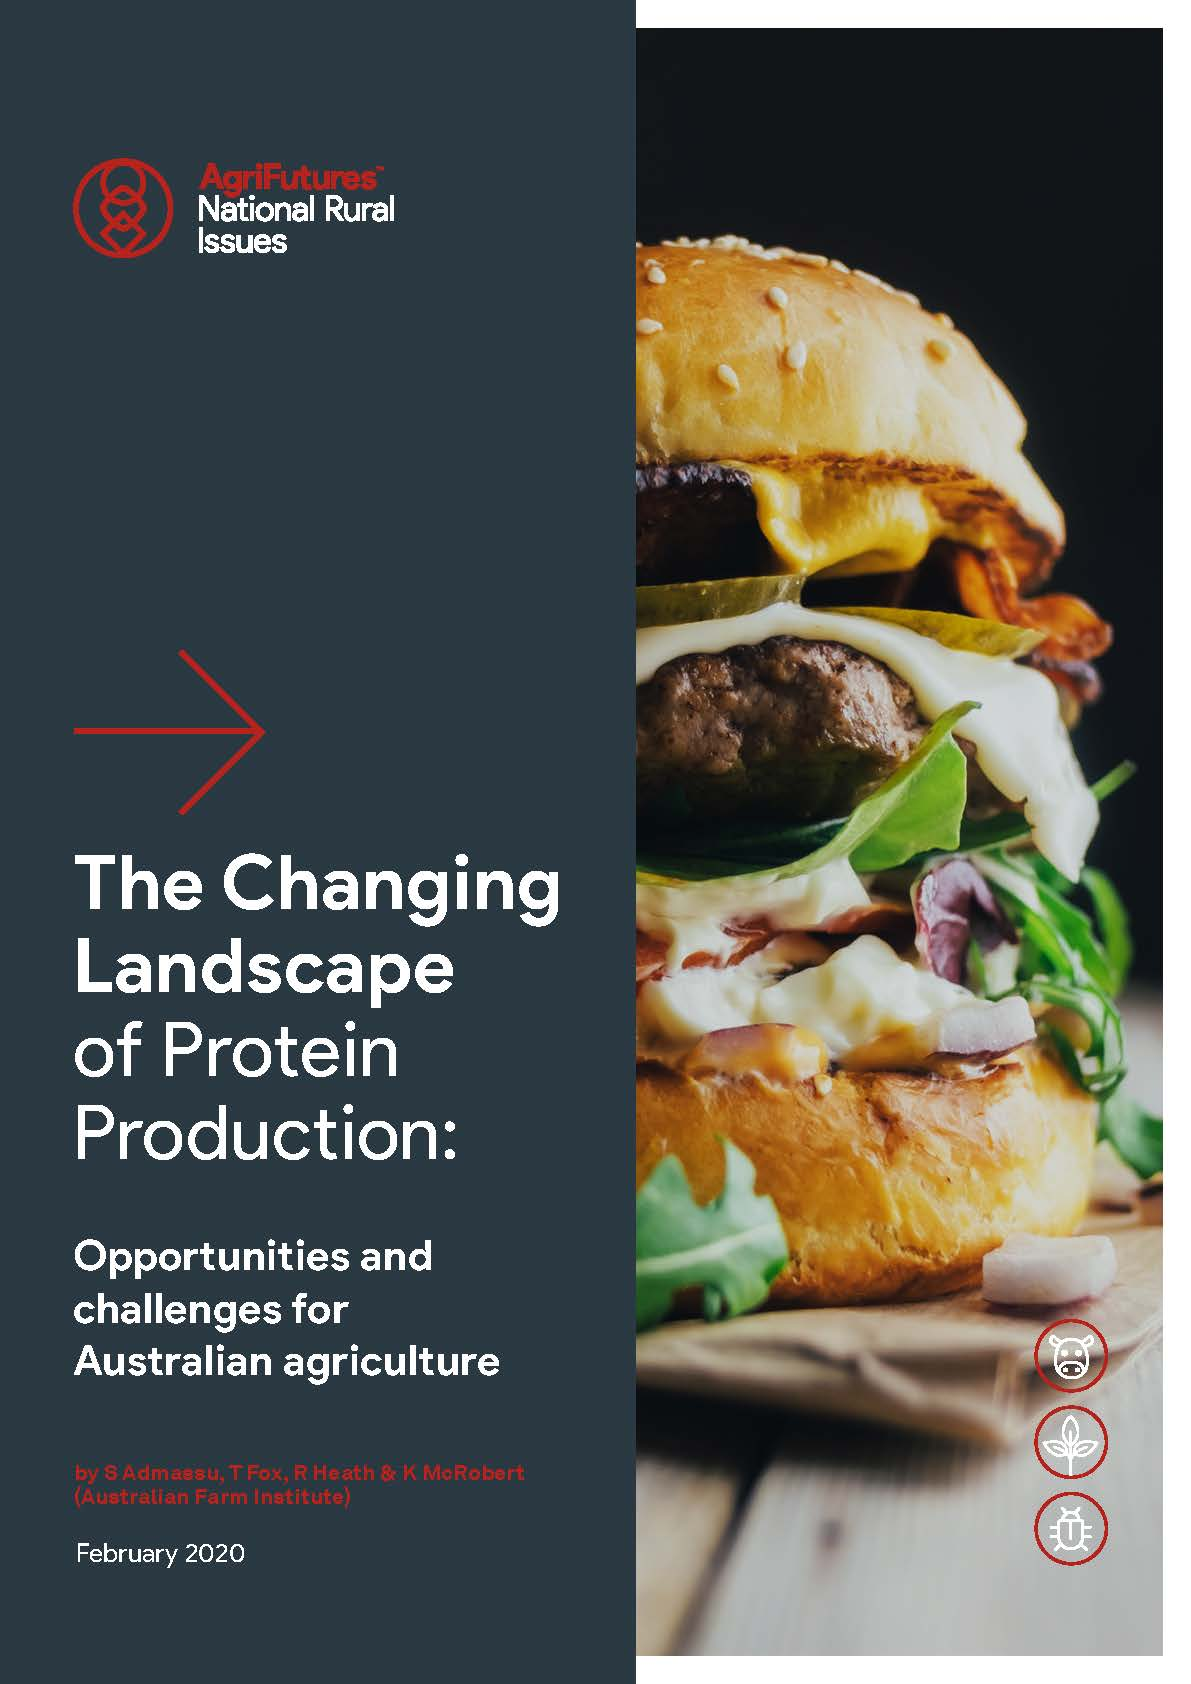 The Changing Landscape of Protein Production: Opportunities and challenges for Australian agriculture - image